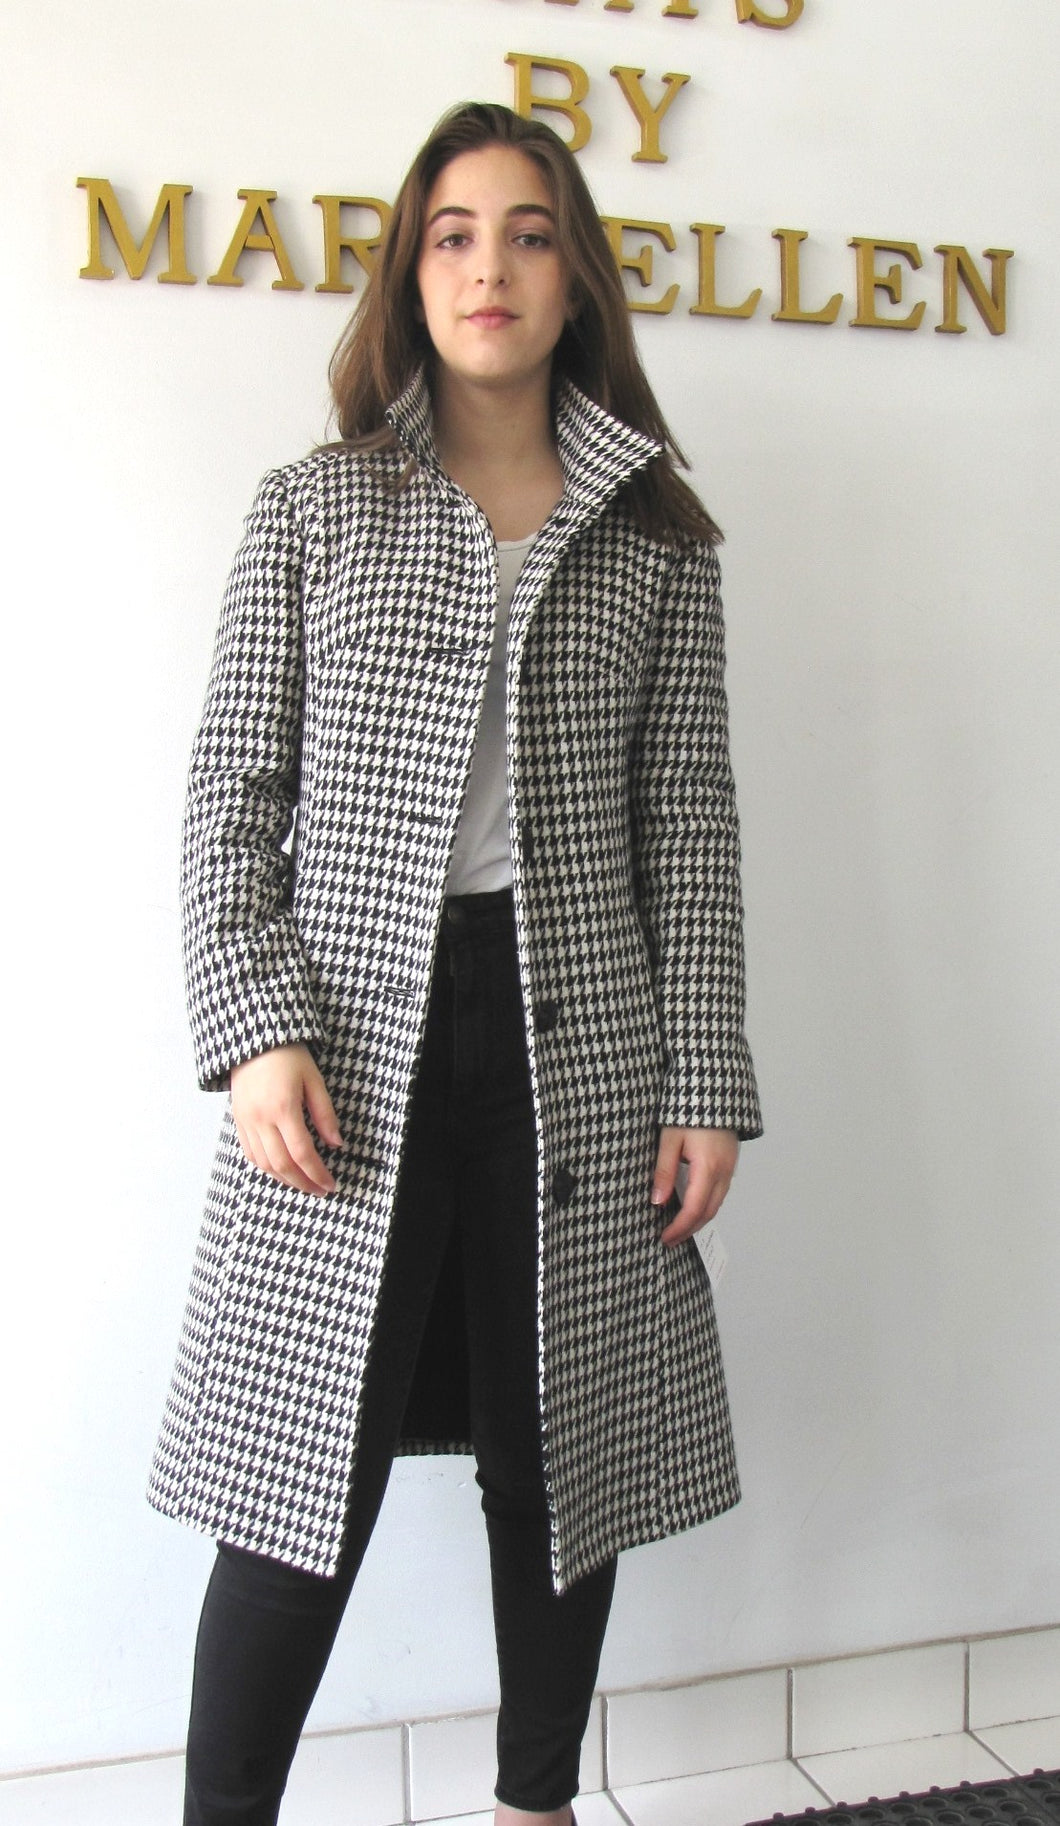 Brittney Coat - 100% Merino Wool